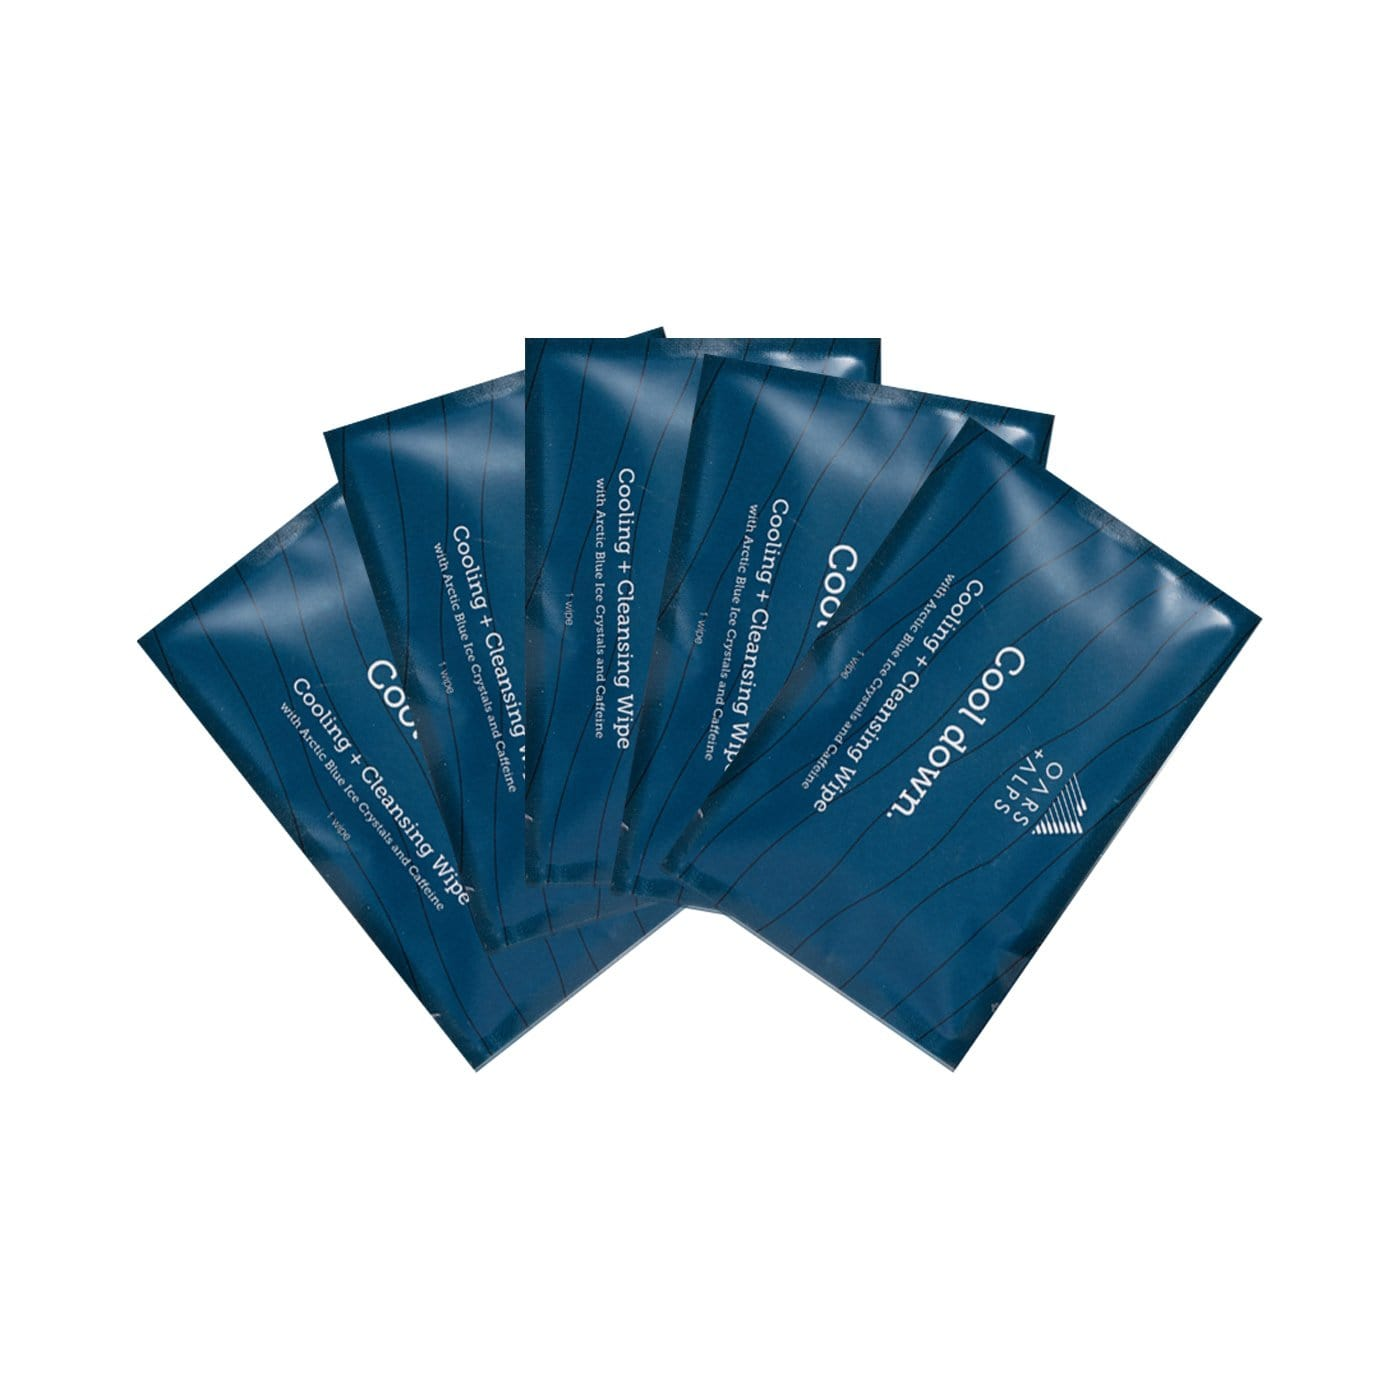 FREE 5 Cooling + Cleansing Wipes